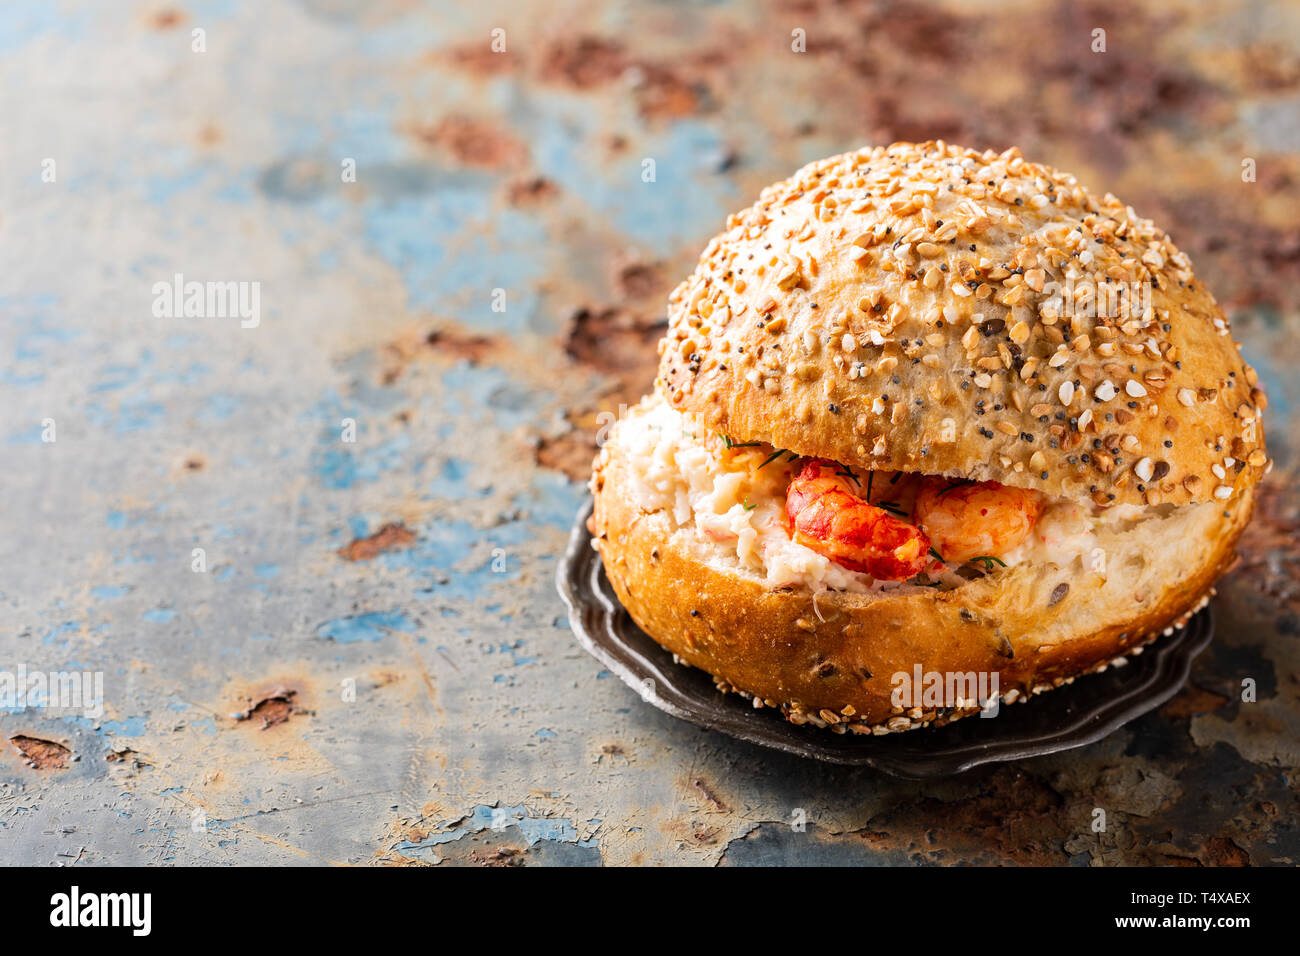 Sandwiche with crab salad and shrimp on old wooden table. Healthy food background concept with copy space - Stock Image